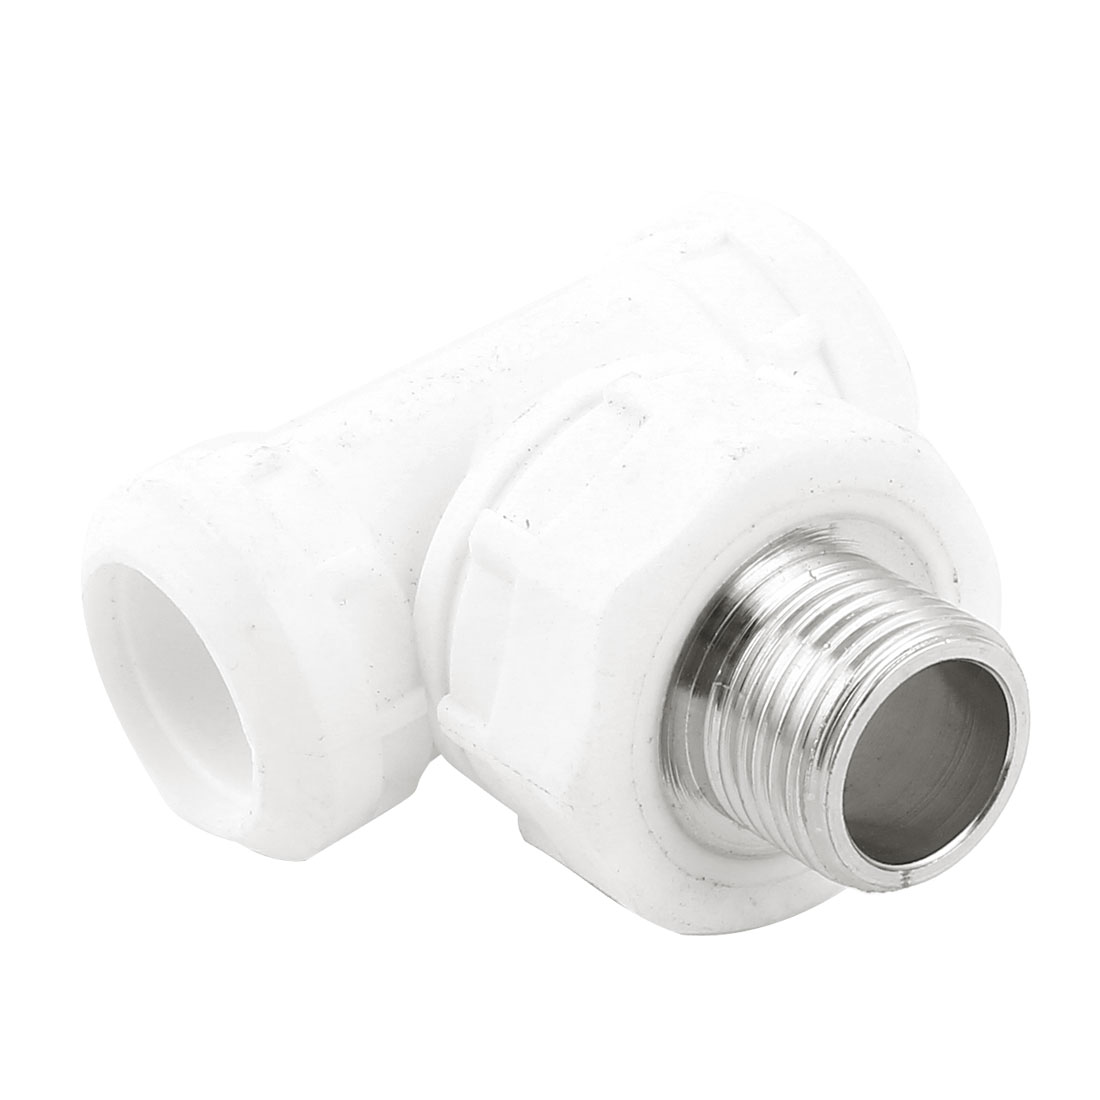 Water Hose Pipe Tube Tee T Fitting Connector 20mm to 1/2PT Male Thread